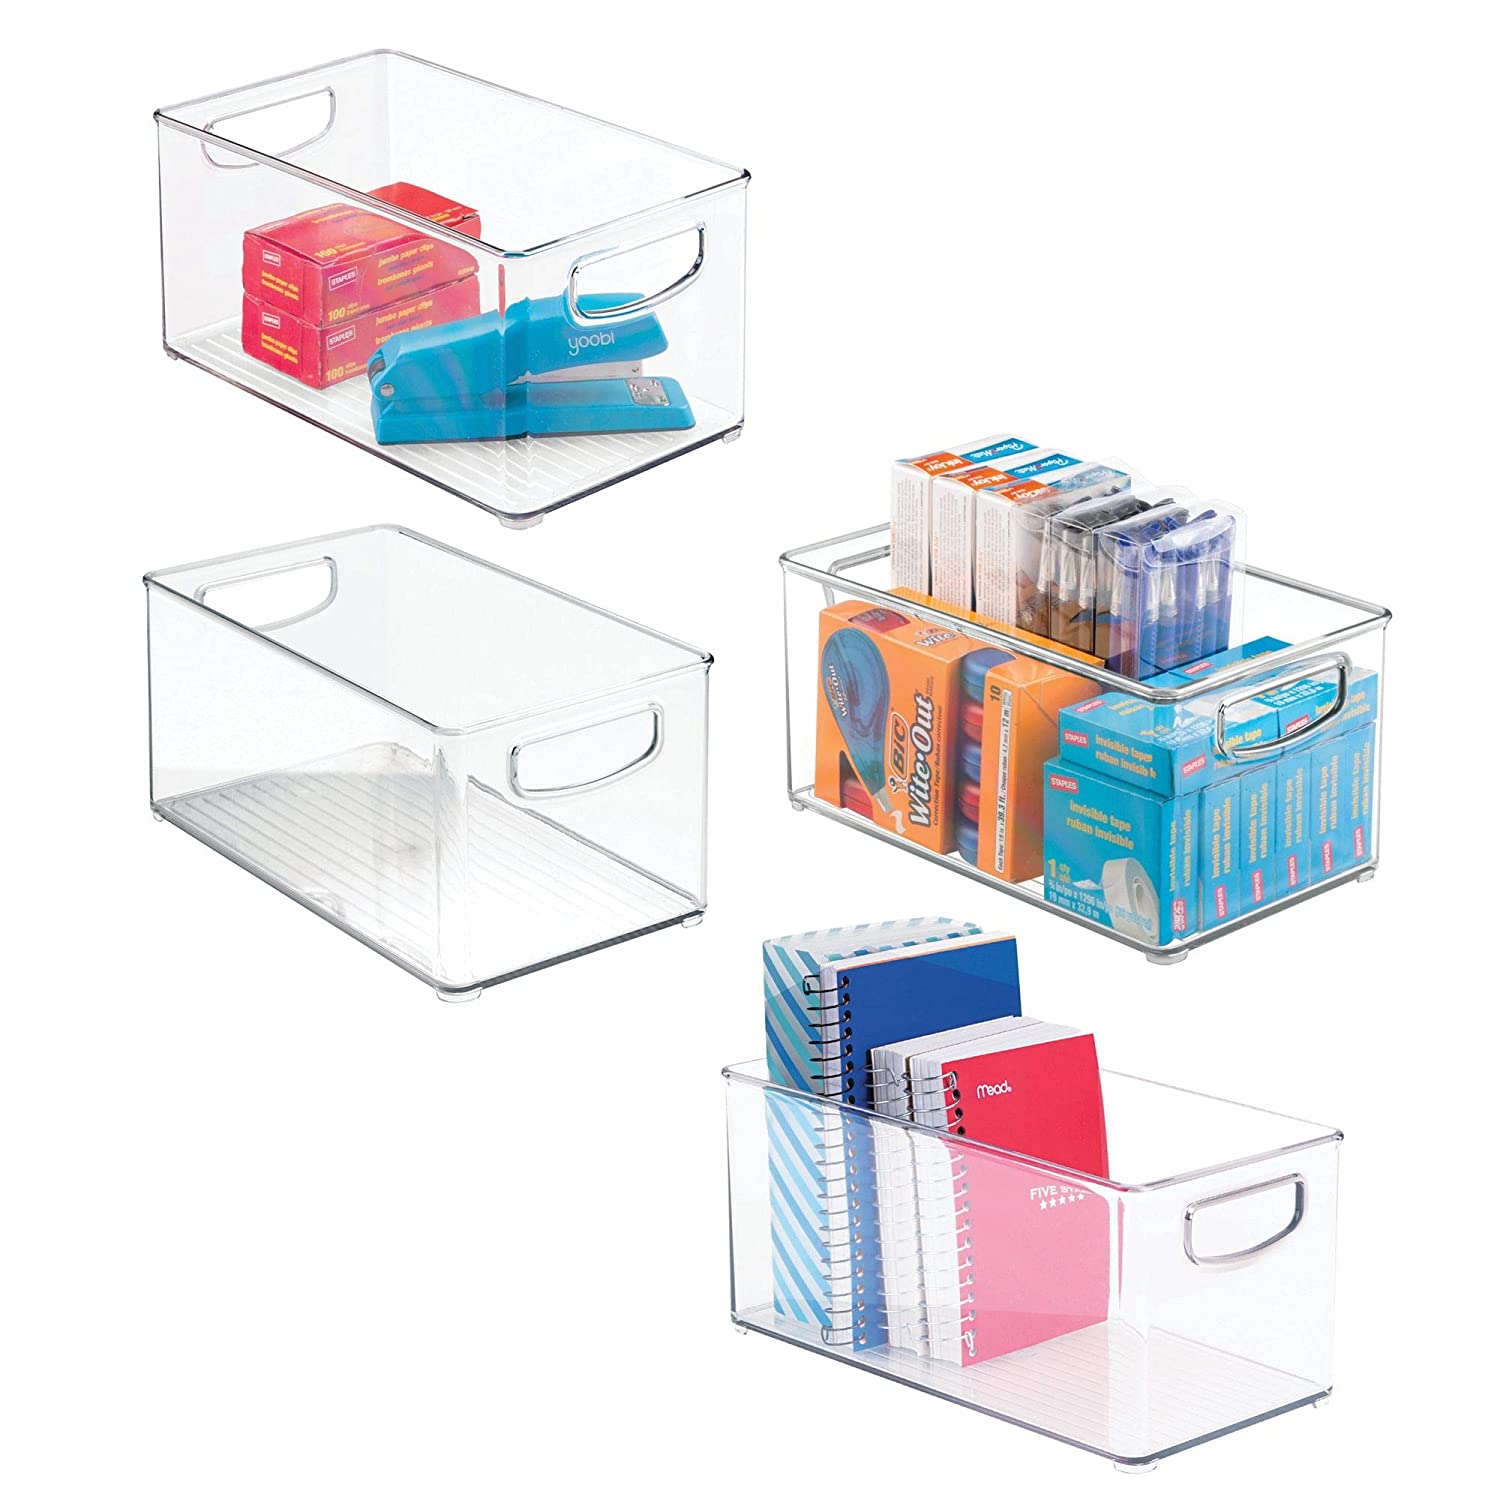 mDesign Office Organizer Bins for Pens, Pencils, Note Pads, Staples, Tape - Pack of 4, 10' x 6' x 5', Clear 10 x 6 x 5 MetroDecor 6338MDO